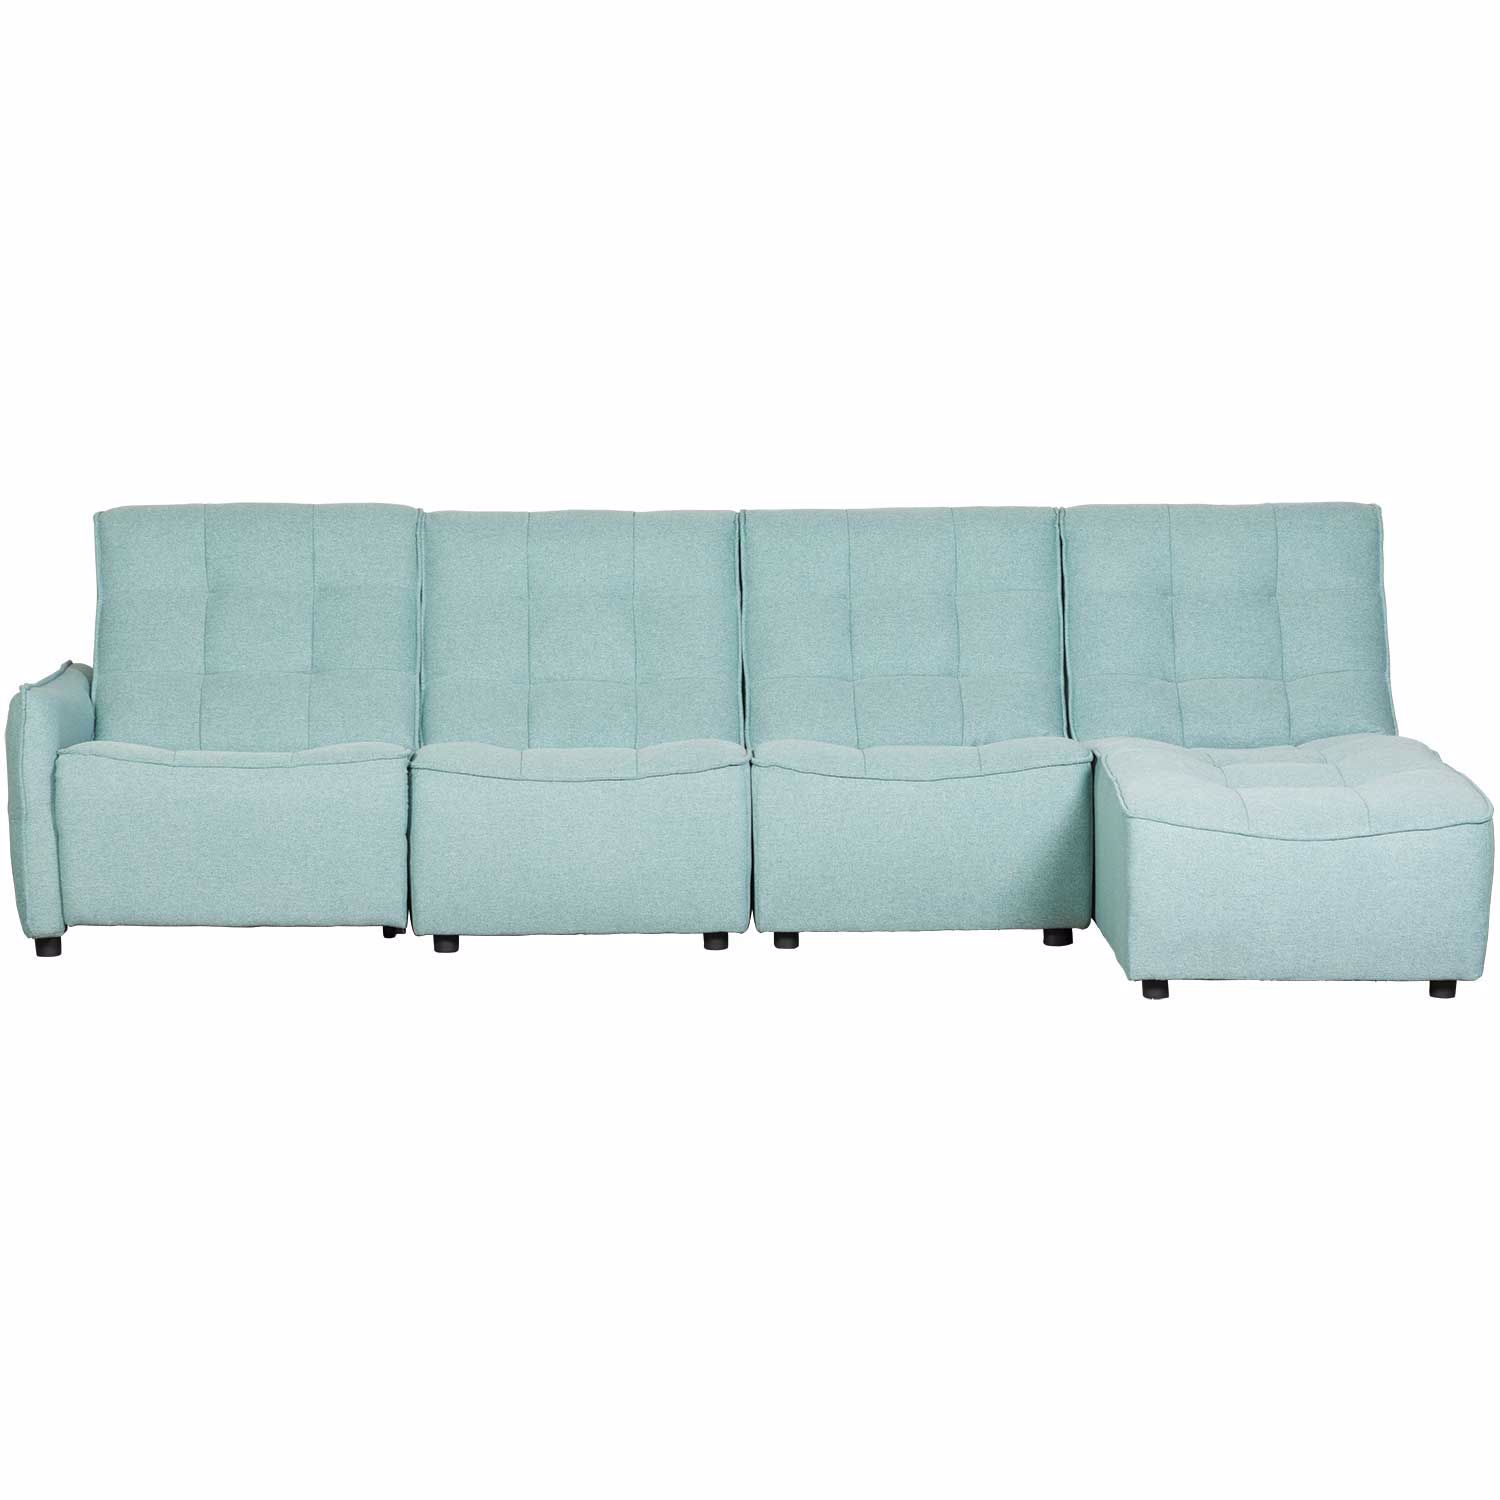 Picture of Lagoon 4 Piece LAF Power Reclining Sectional